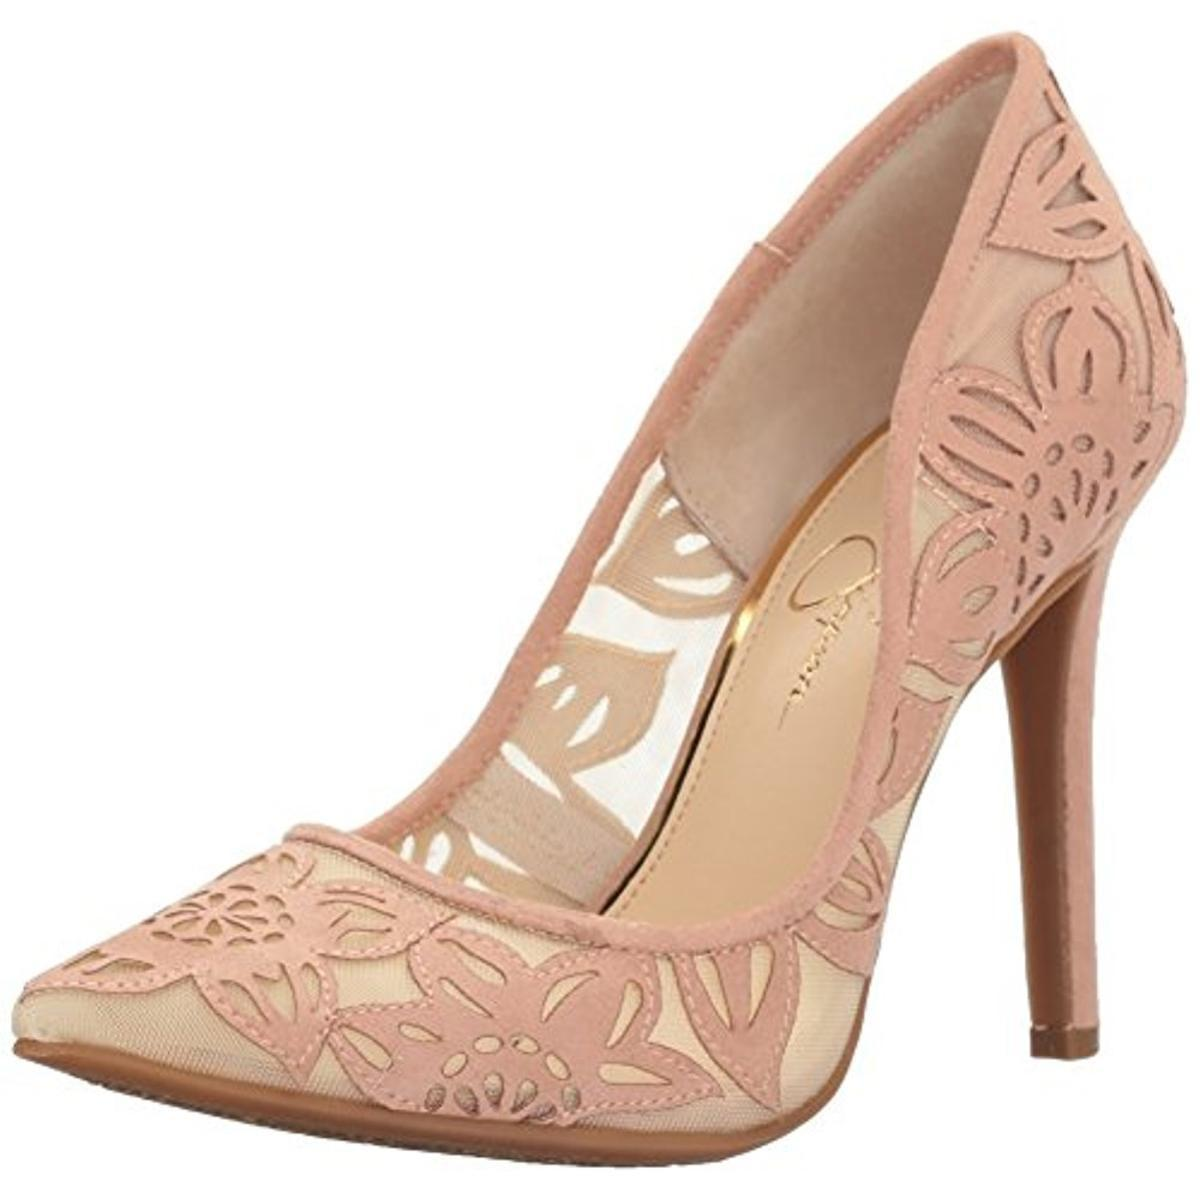 Lyst Jessica Simpson Charese Pointed Natural Toe Pumps Stilettos in Natural Pointed 7128e8